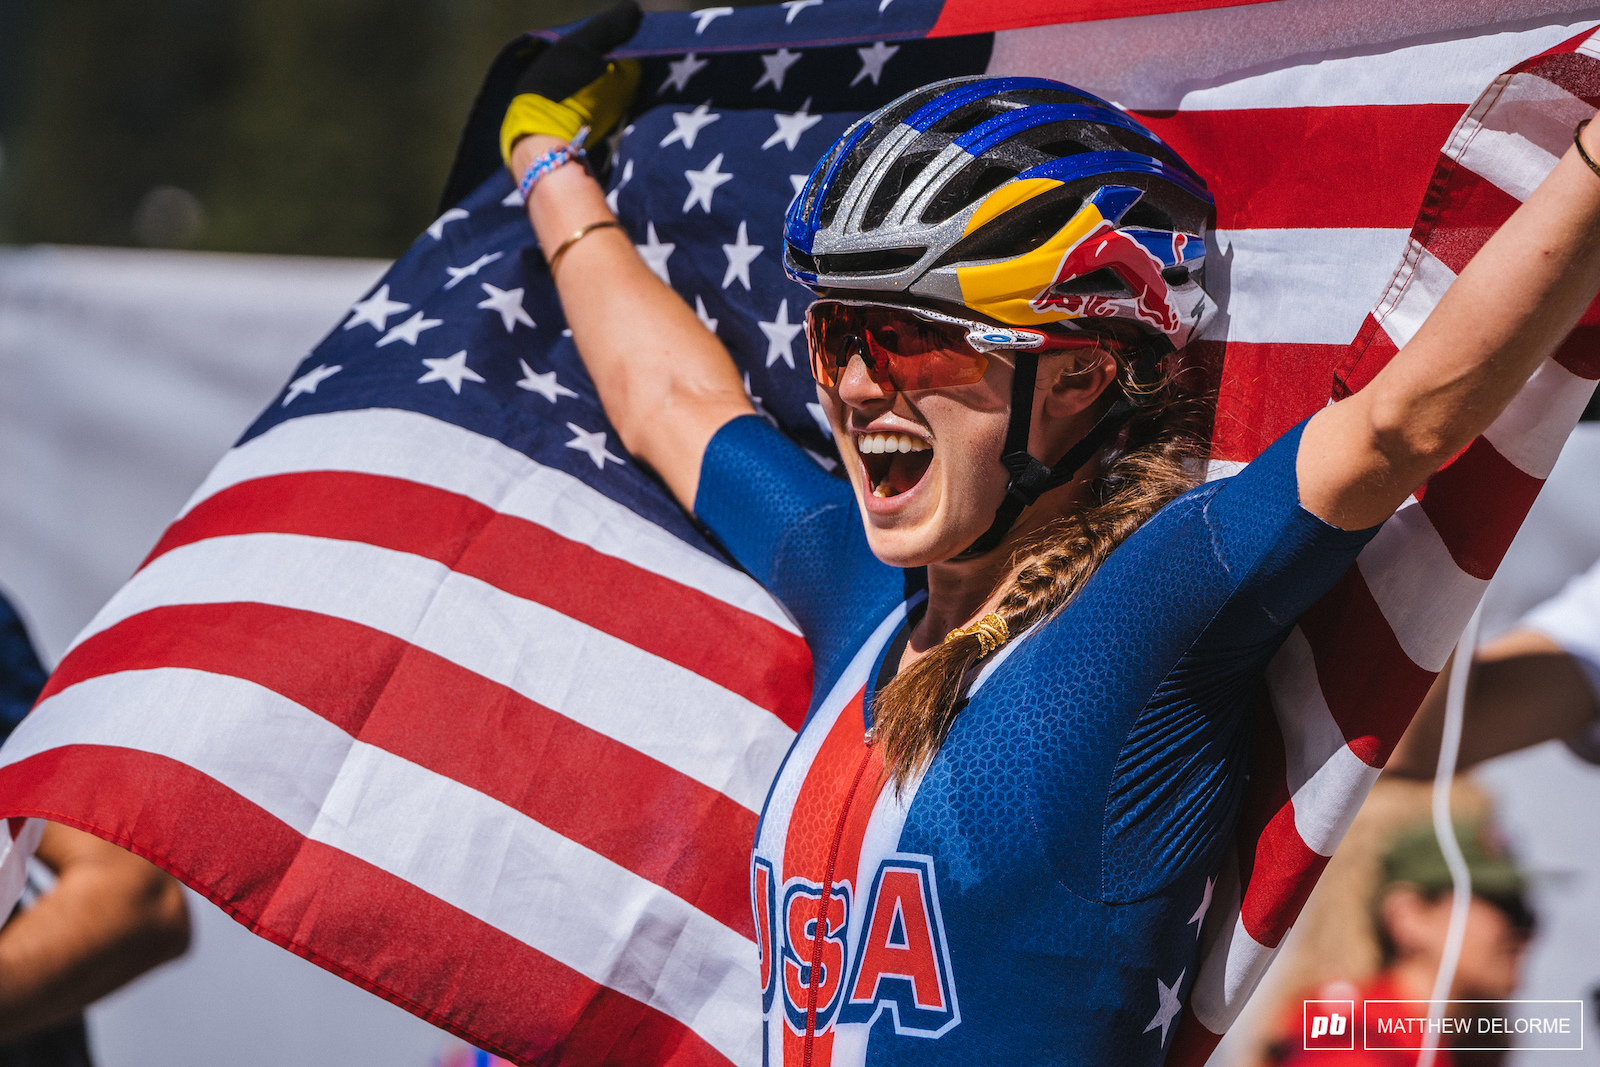 What a ride for Kate Courtney.